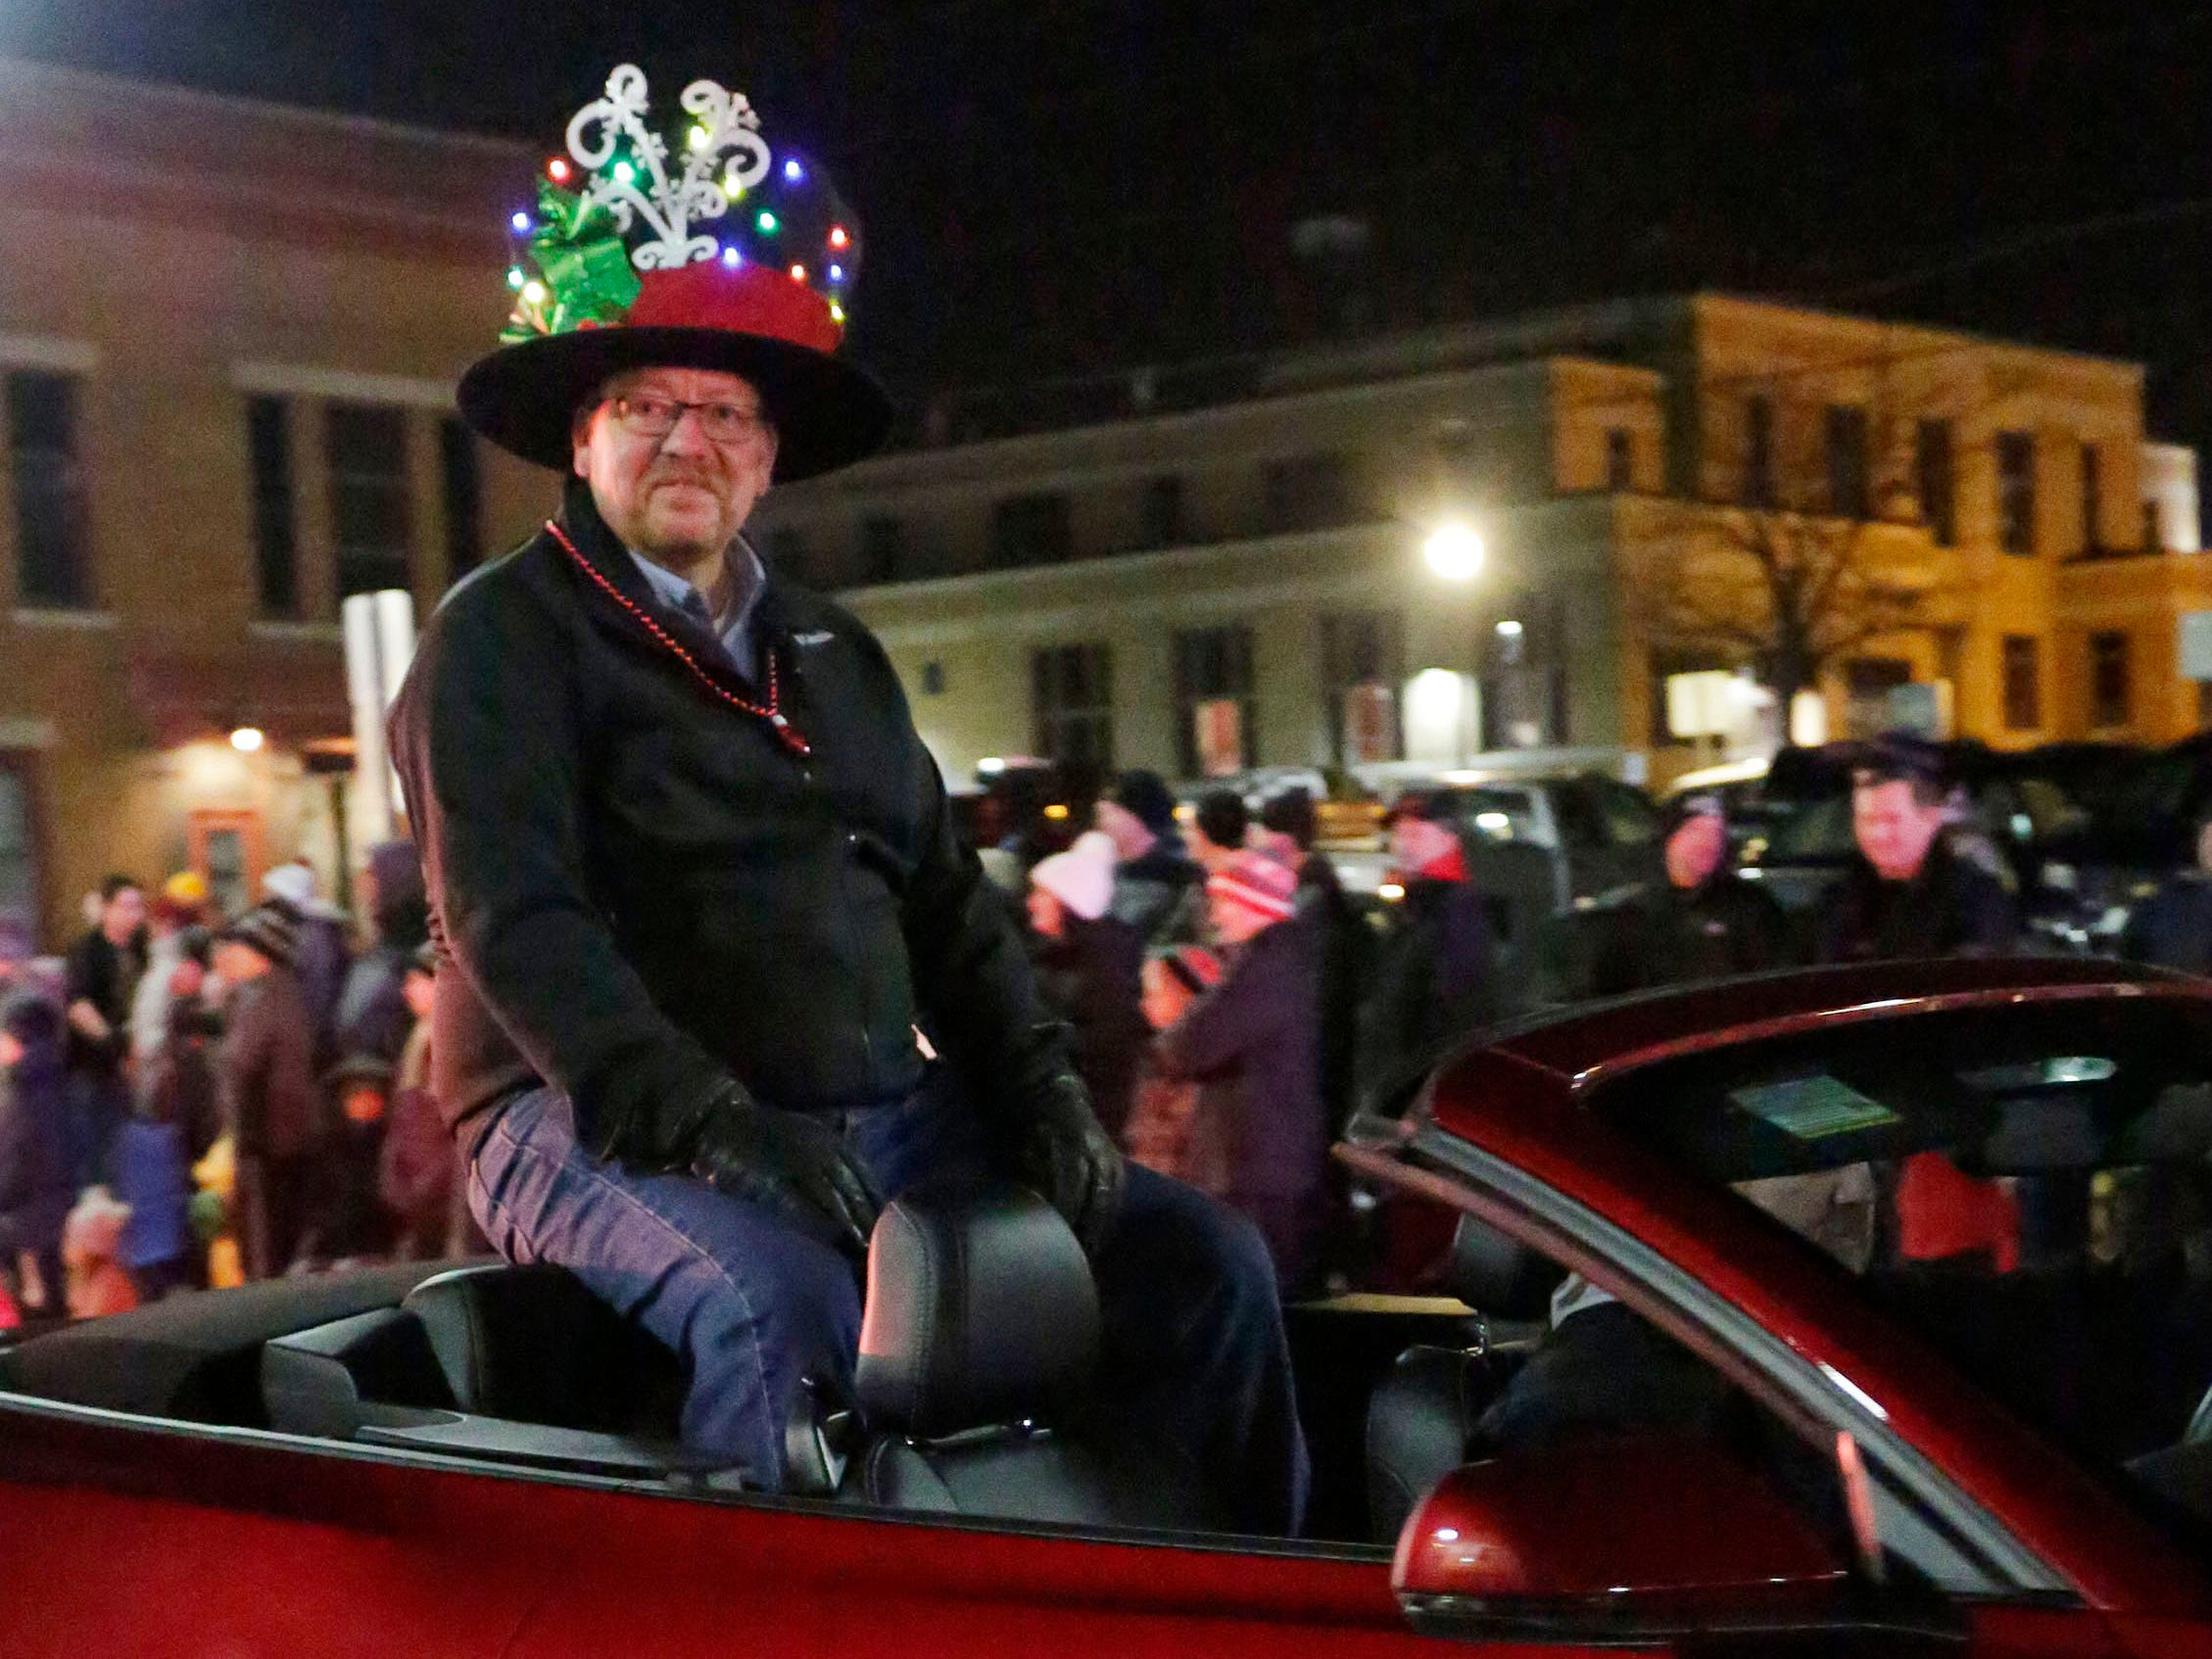 Grand Marshall Todd Neils rides in the Plymouth Christmas Parade, Friday, November 23, 2018, in Plymouth, Wis.